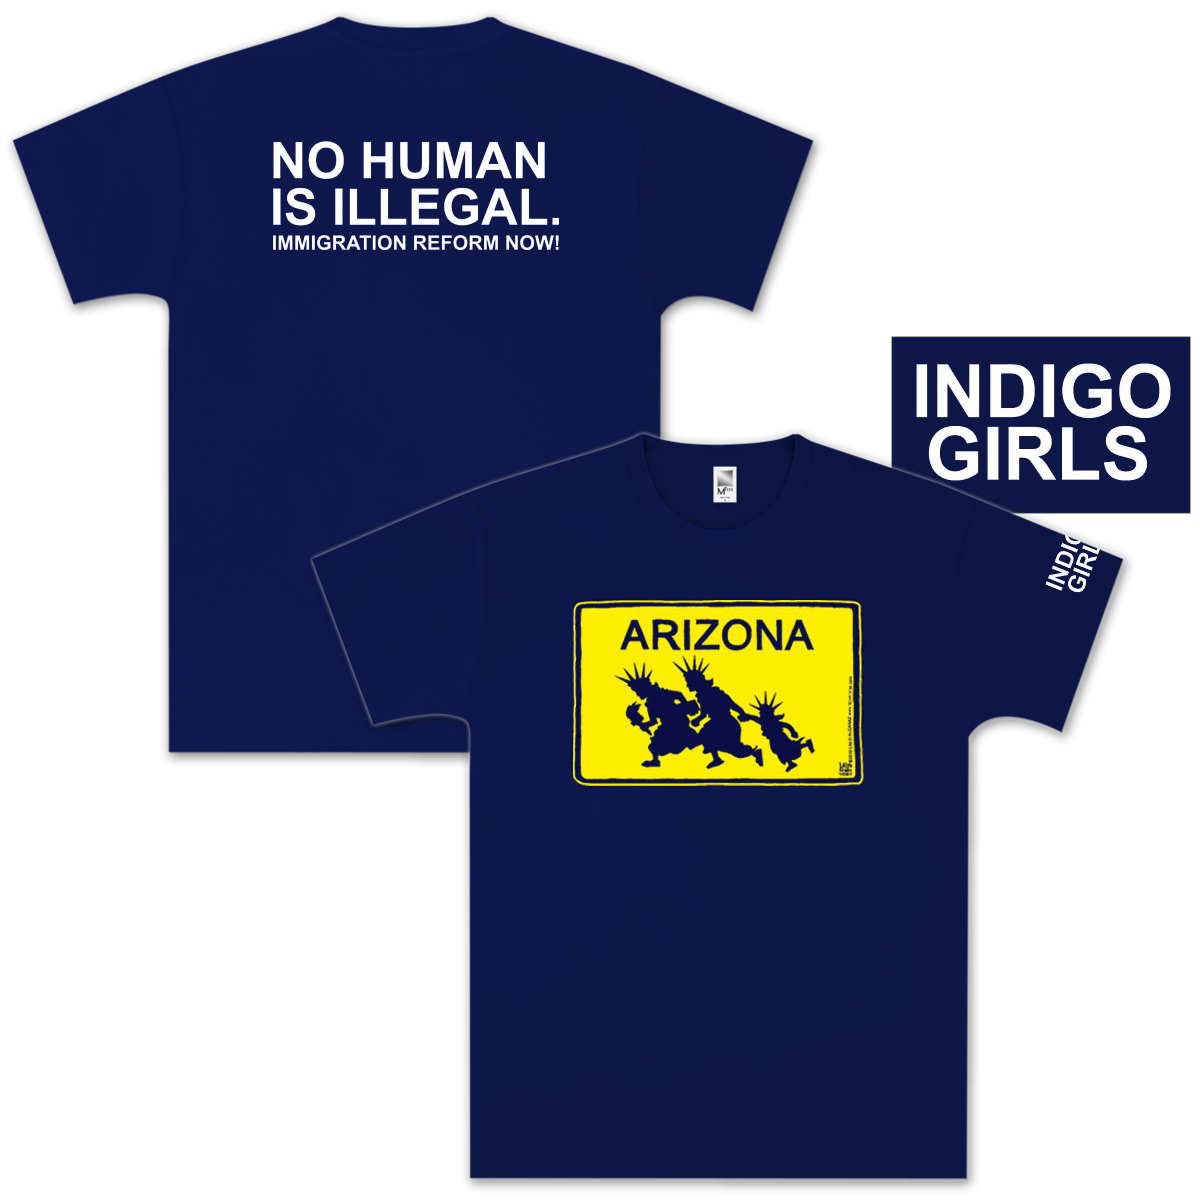 Indigo Girls TAKE ACTION TEESHIRTS! (Arizona)